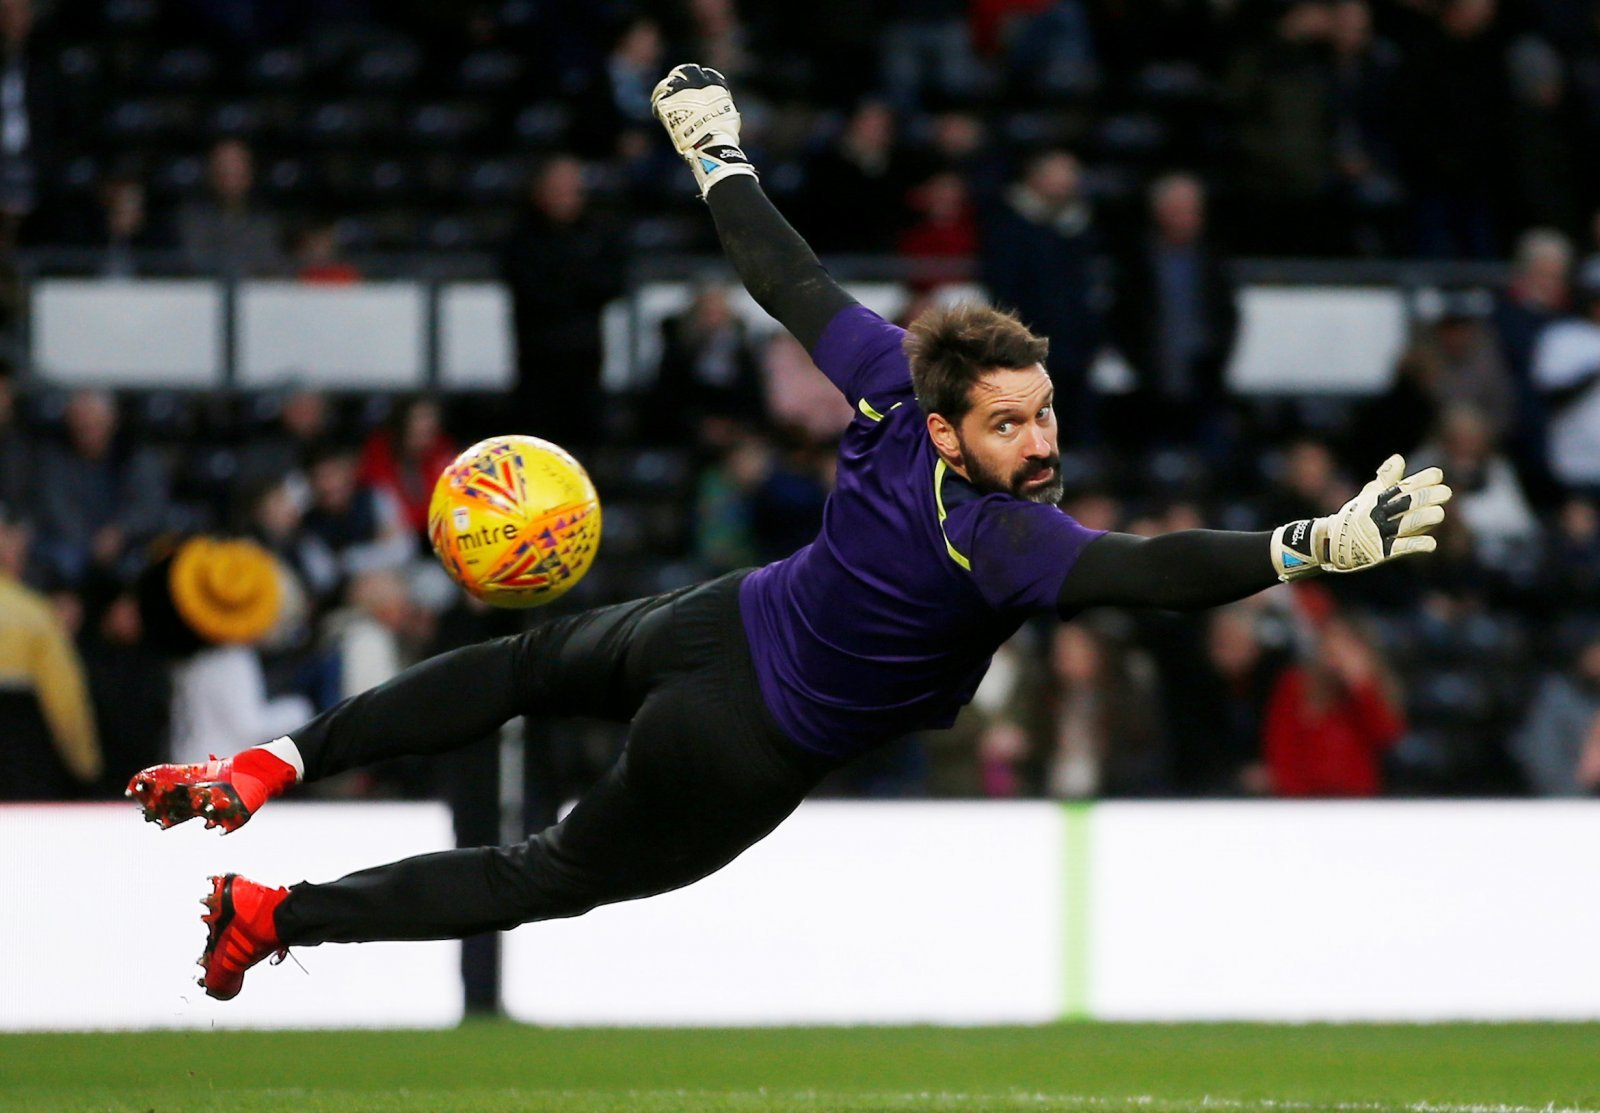 Manchester City: Scott Carson set to join on season-long loan from Derby